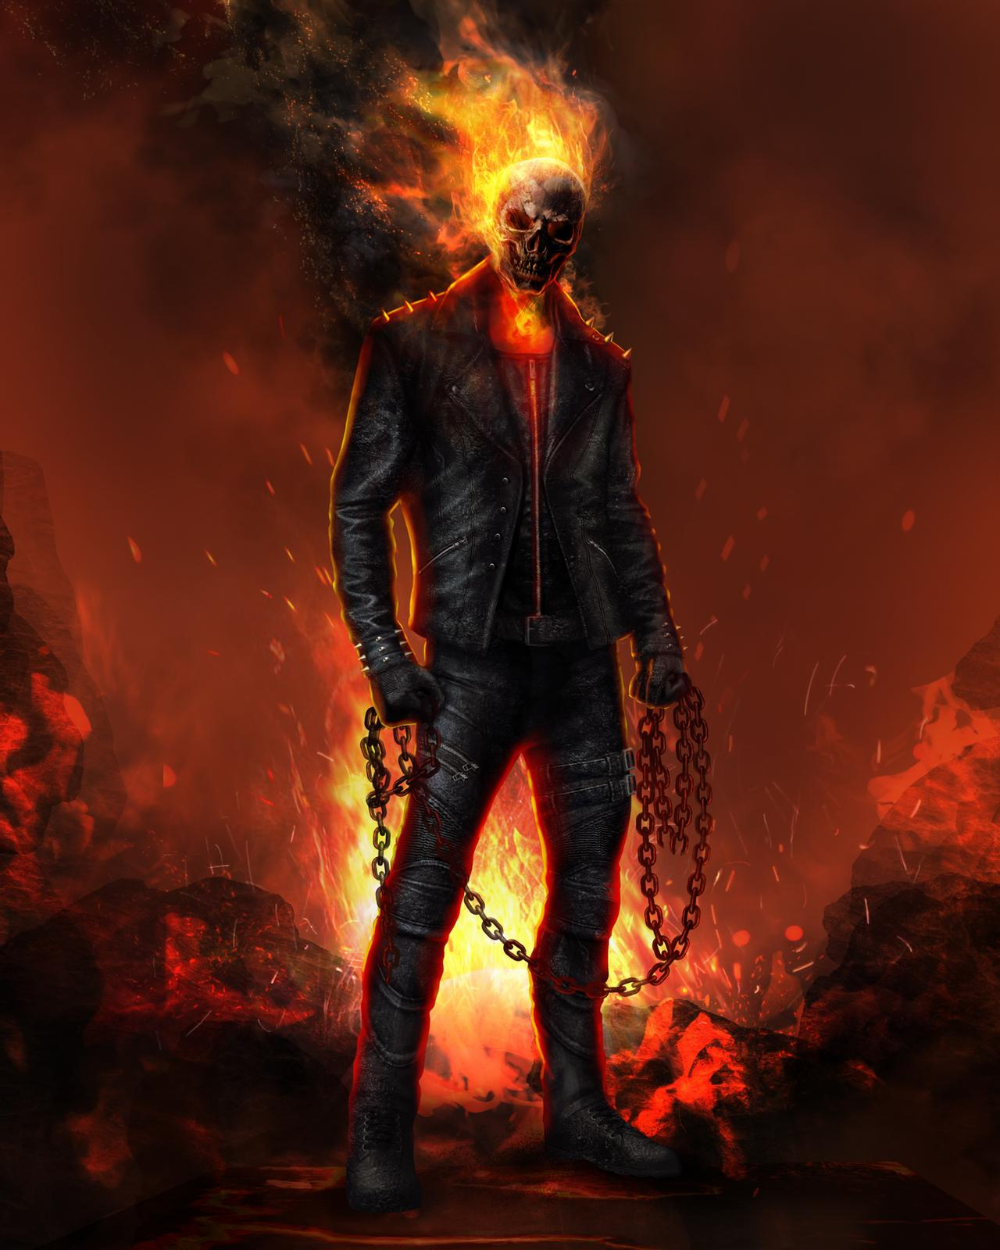 Ghost Rider Concept Art By Dfellow69 On Deviantart In 2021 Ghost Rider Ghost Rider Wallpaper Ghost Rider Tattoo